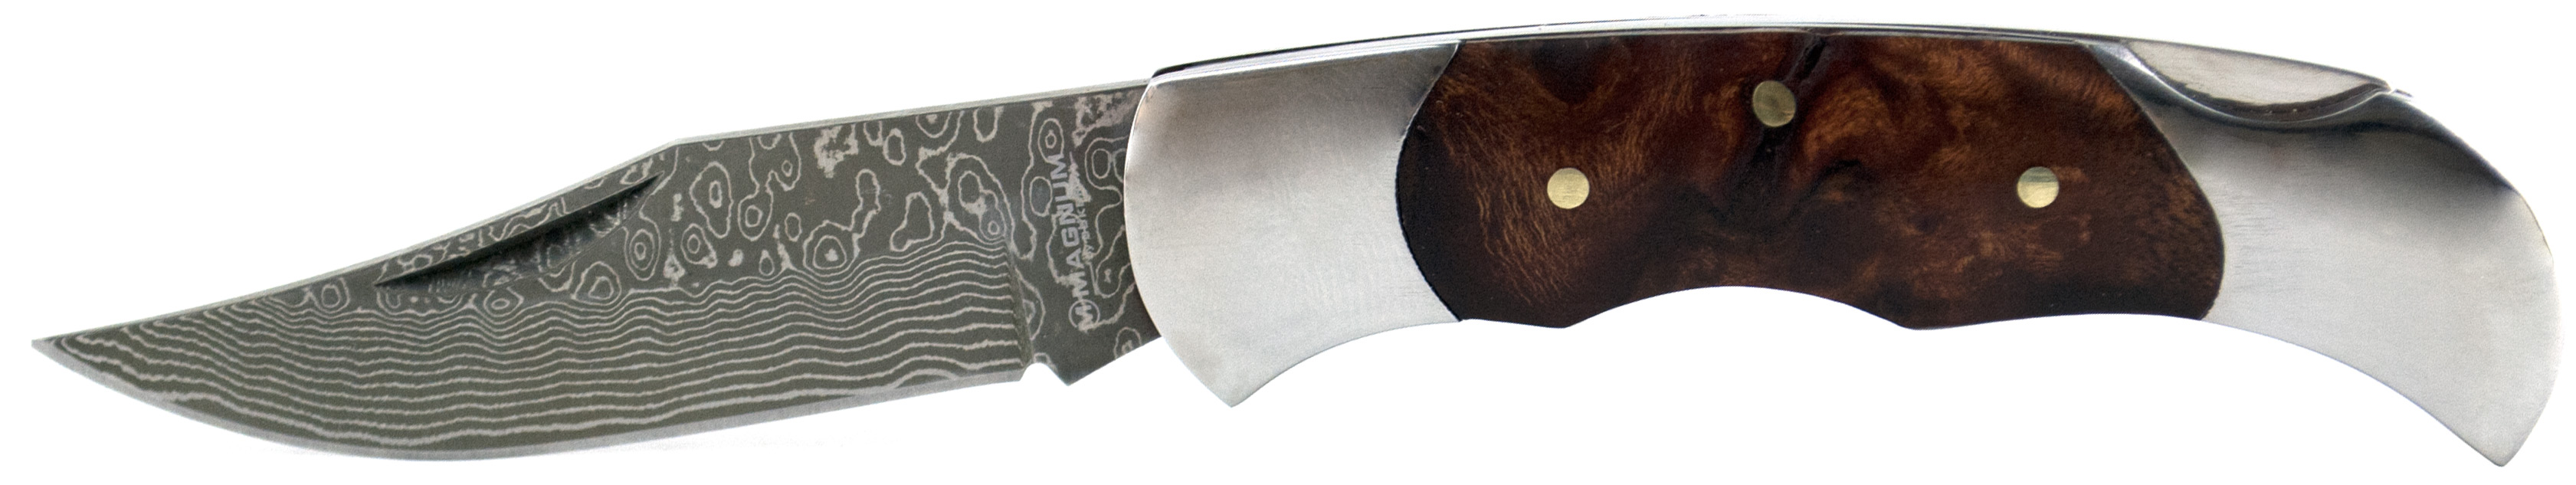 Easy On Your Wallet Damascus Knives